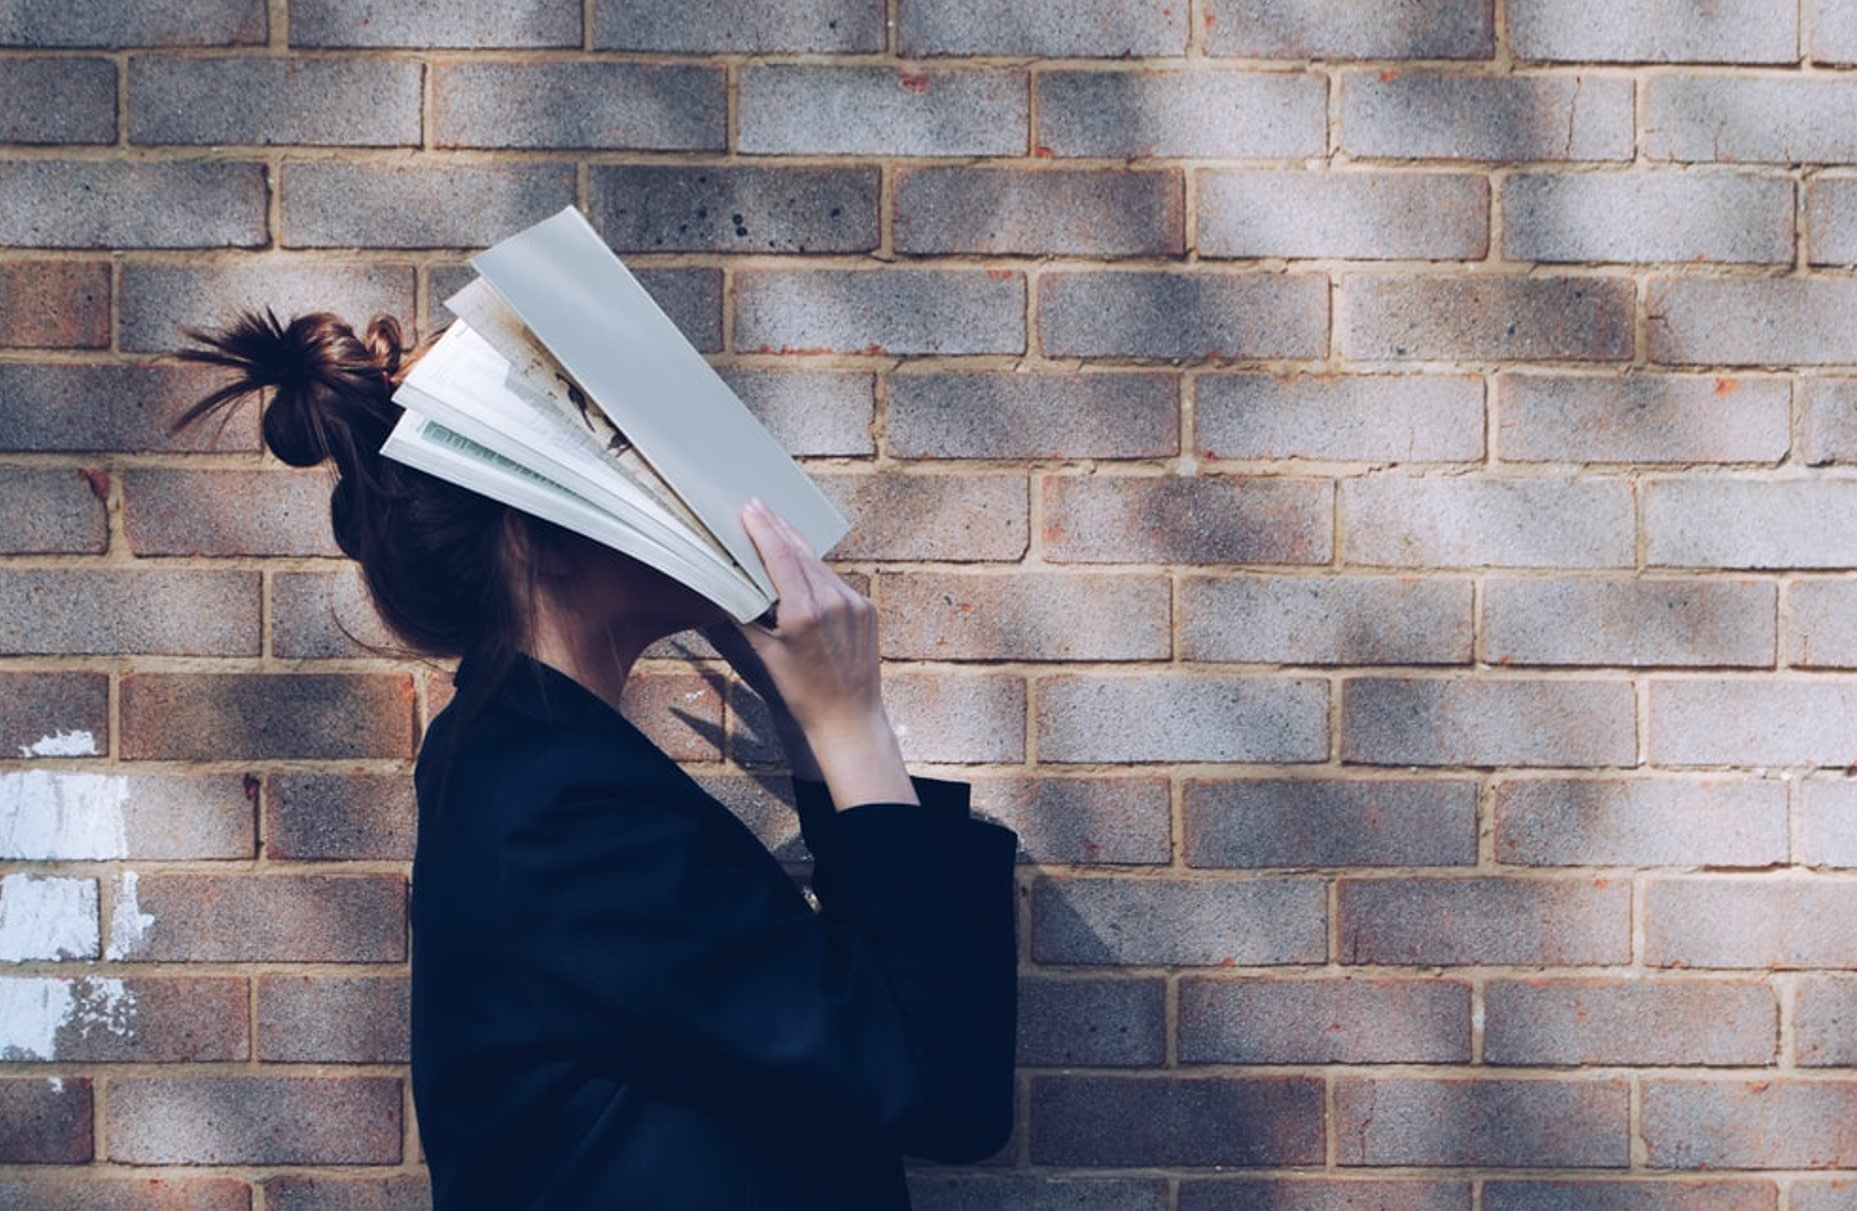 picture of lady covering face with a text book - suggesting she is stressed